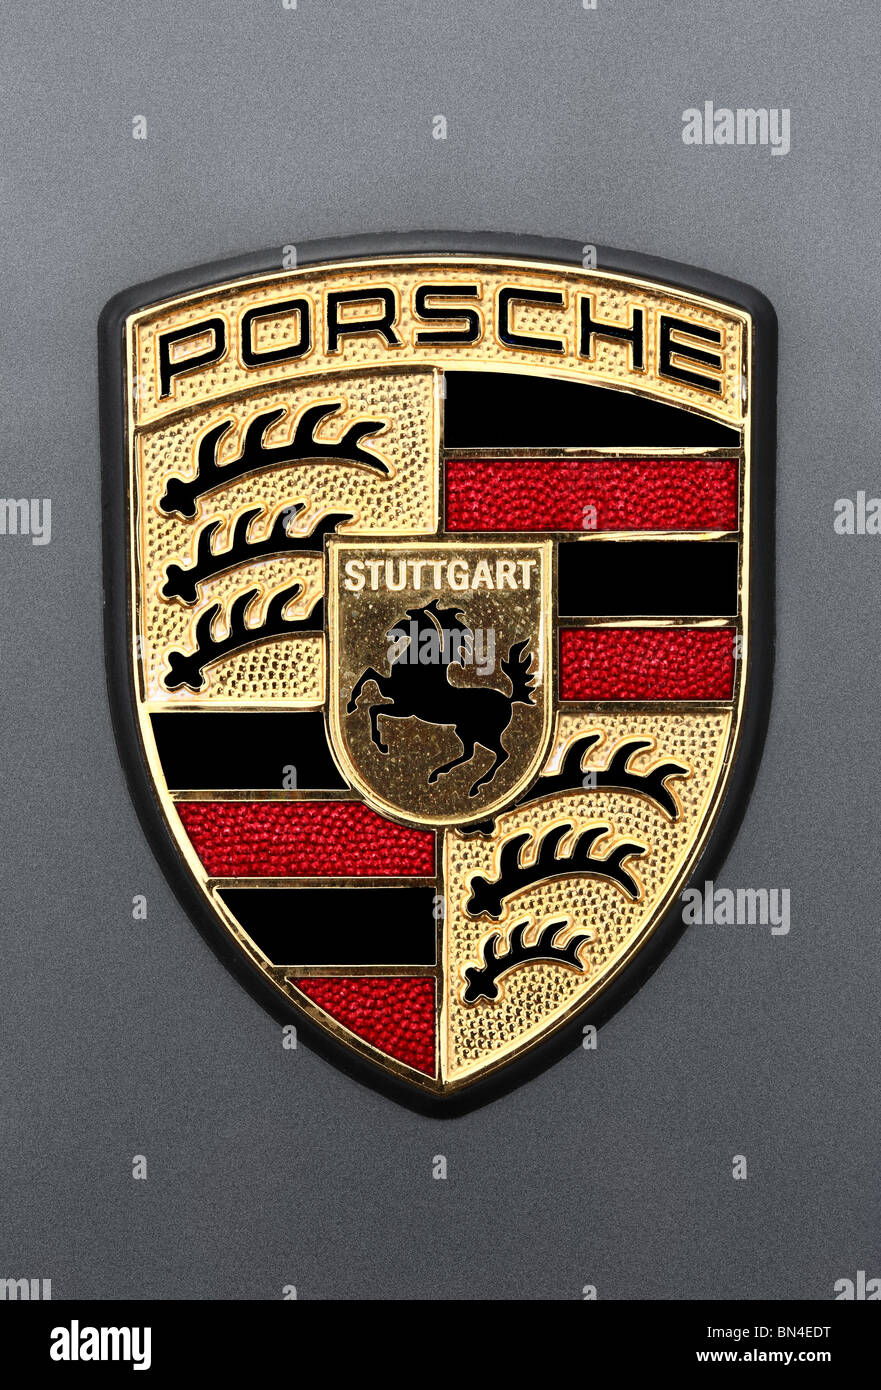 Porsche Logo High Resolution Stock Photography And Images Alamy